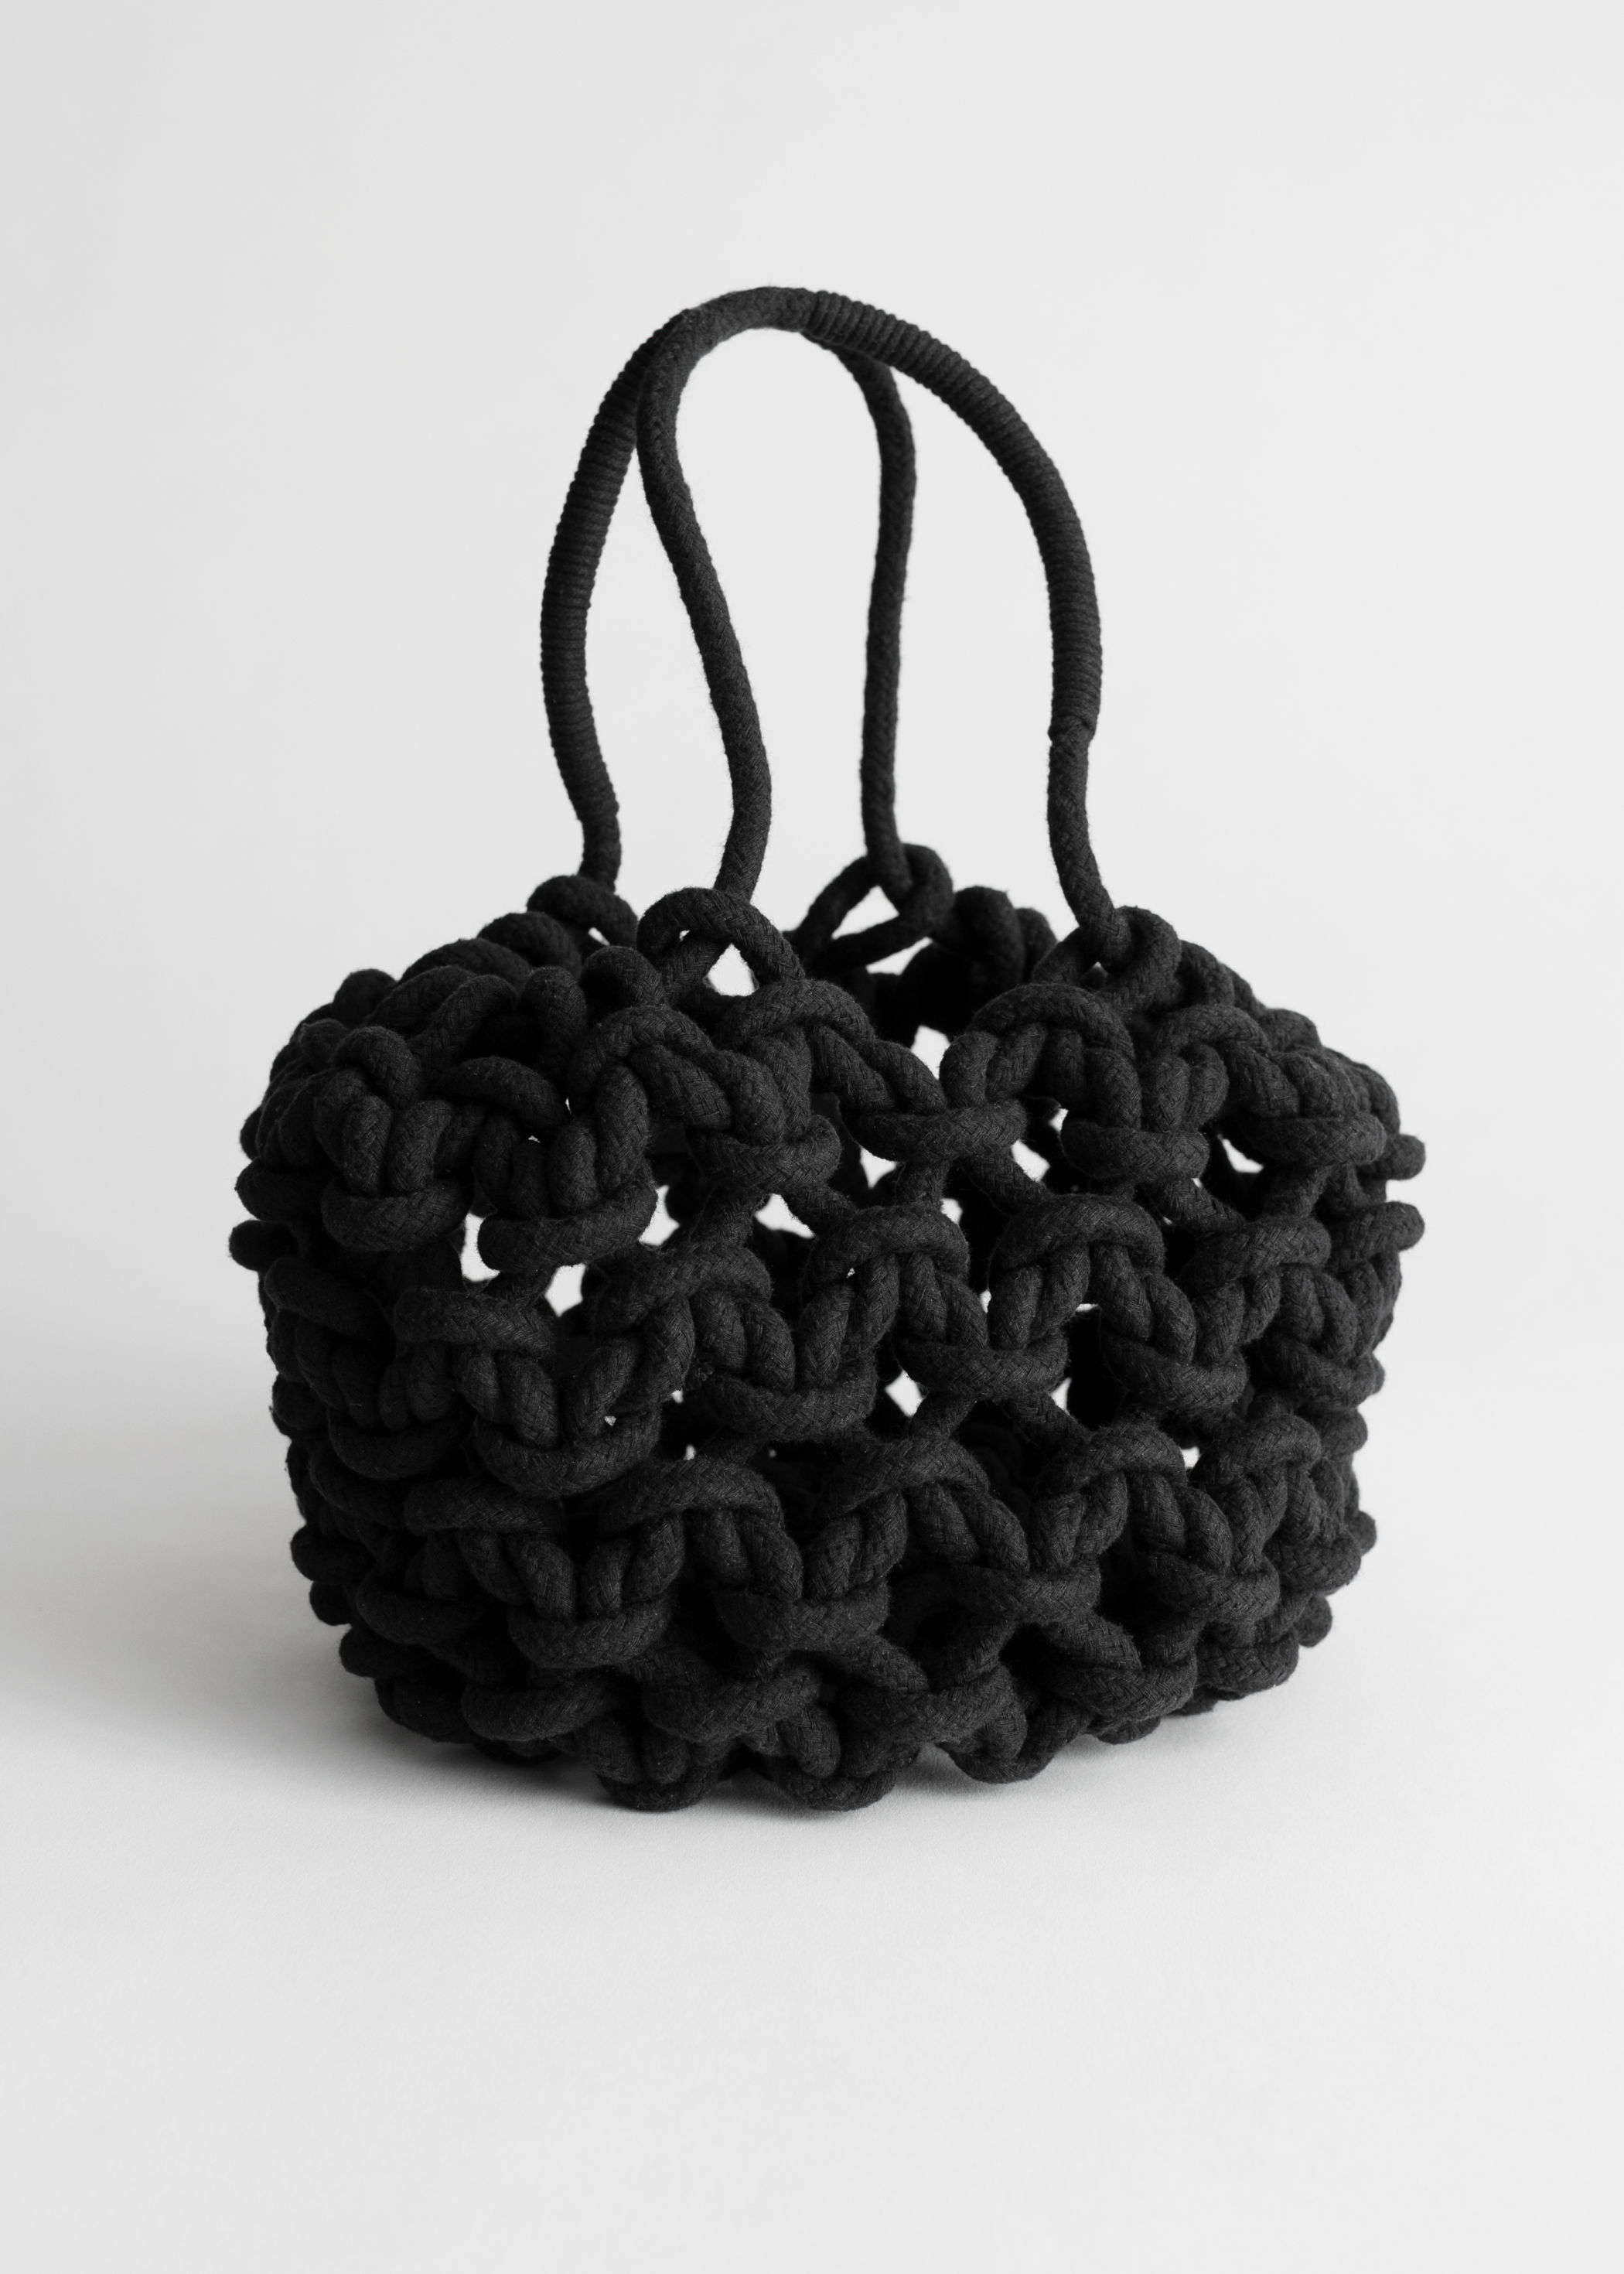 AND OTHER STORIES MACRAME BUCKET BAG 35.jpg